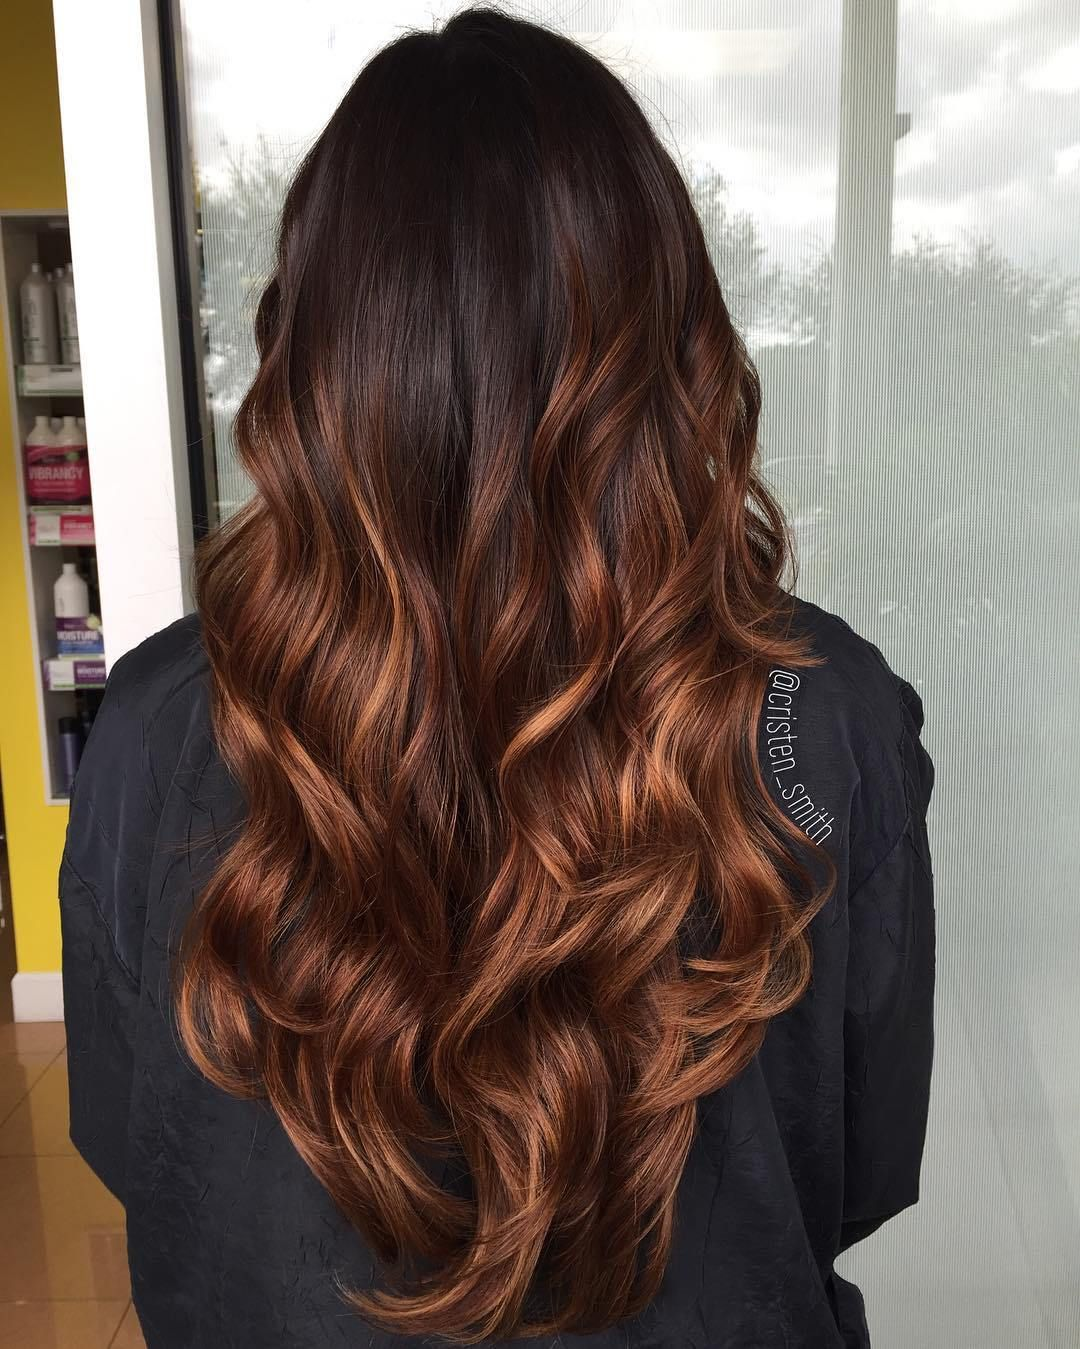 15 Chocolate Brown Hair Color Ideas for Brunettes   Hair color ...